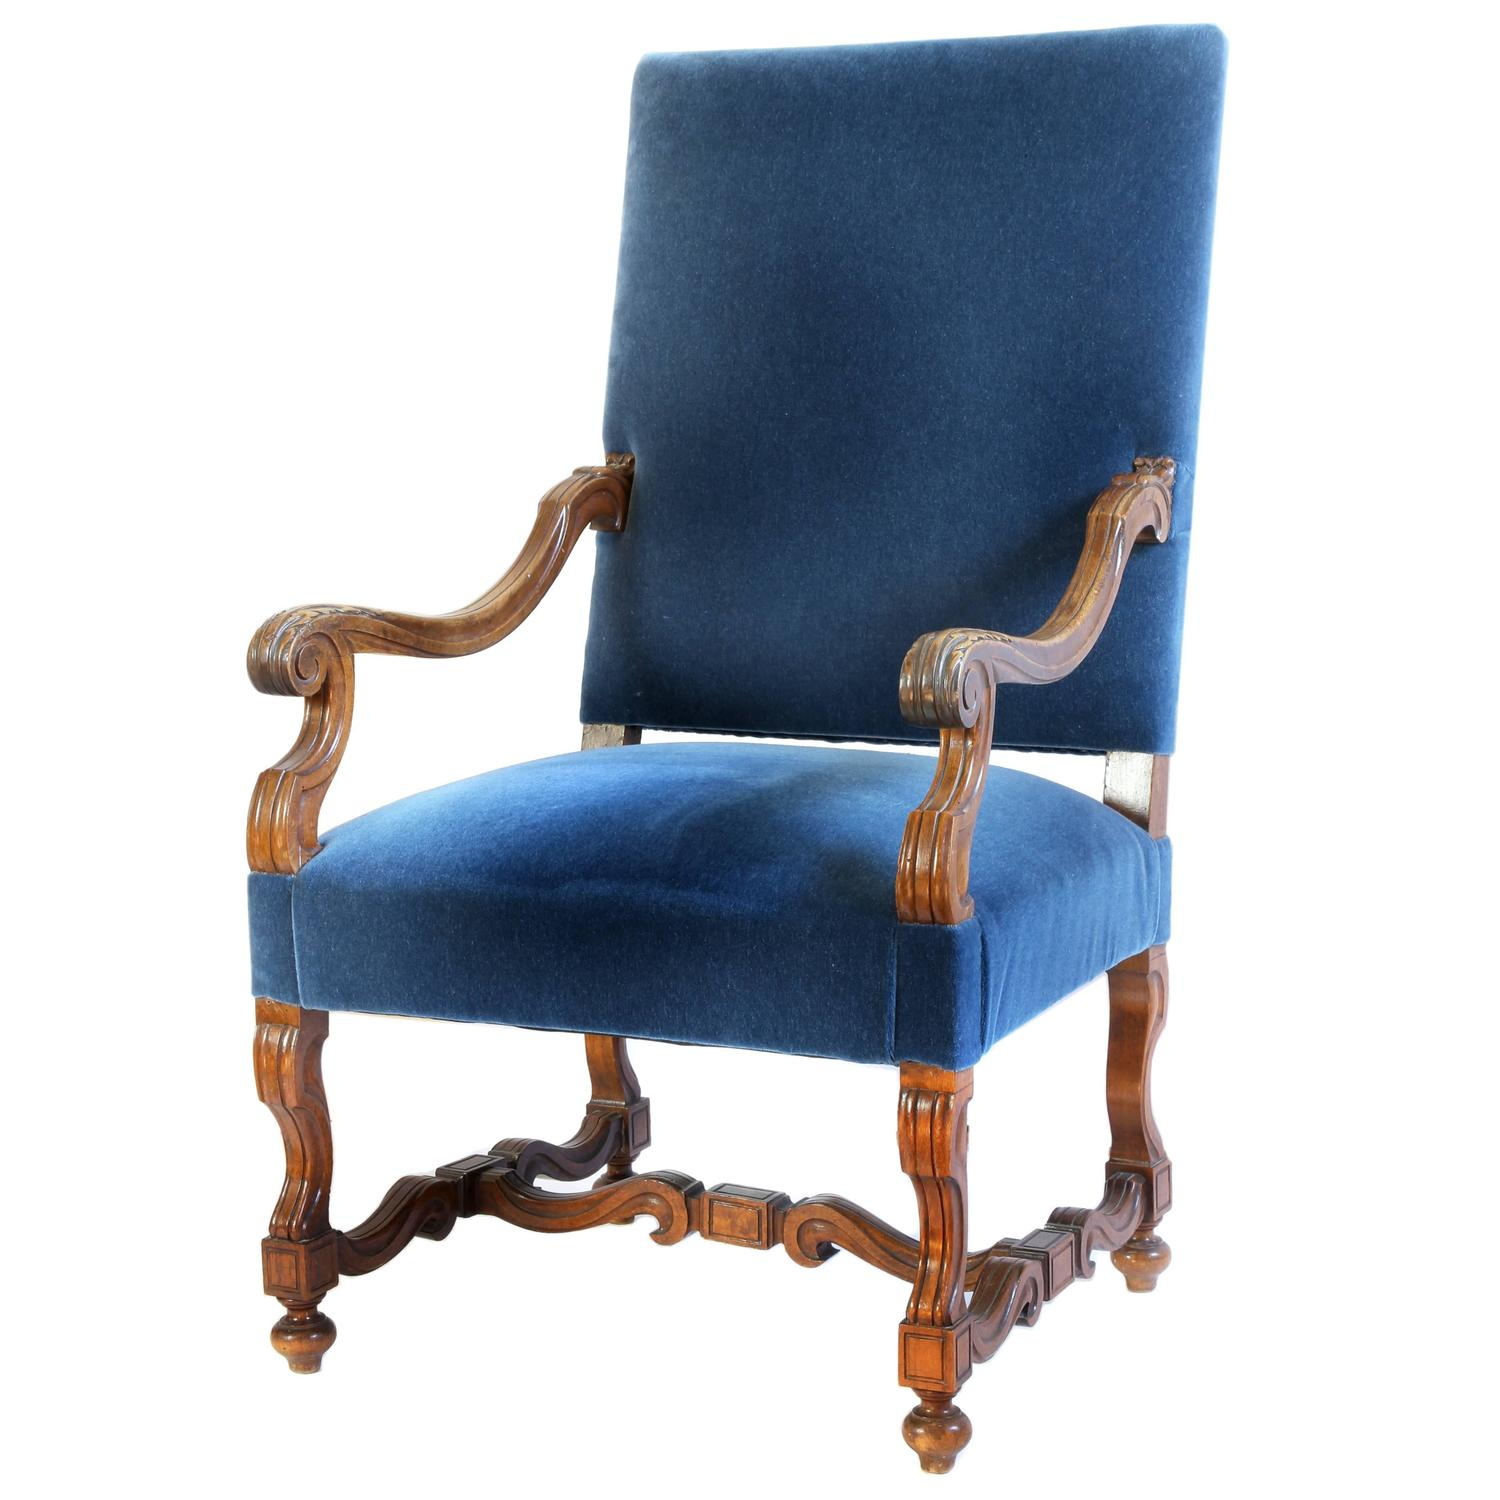 Louis The 14th Furniture French Louis Xiv Style Armchair At 1stdibs